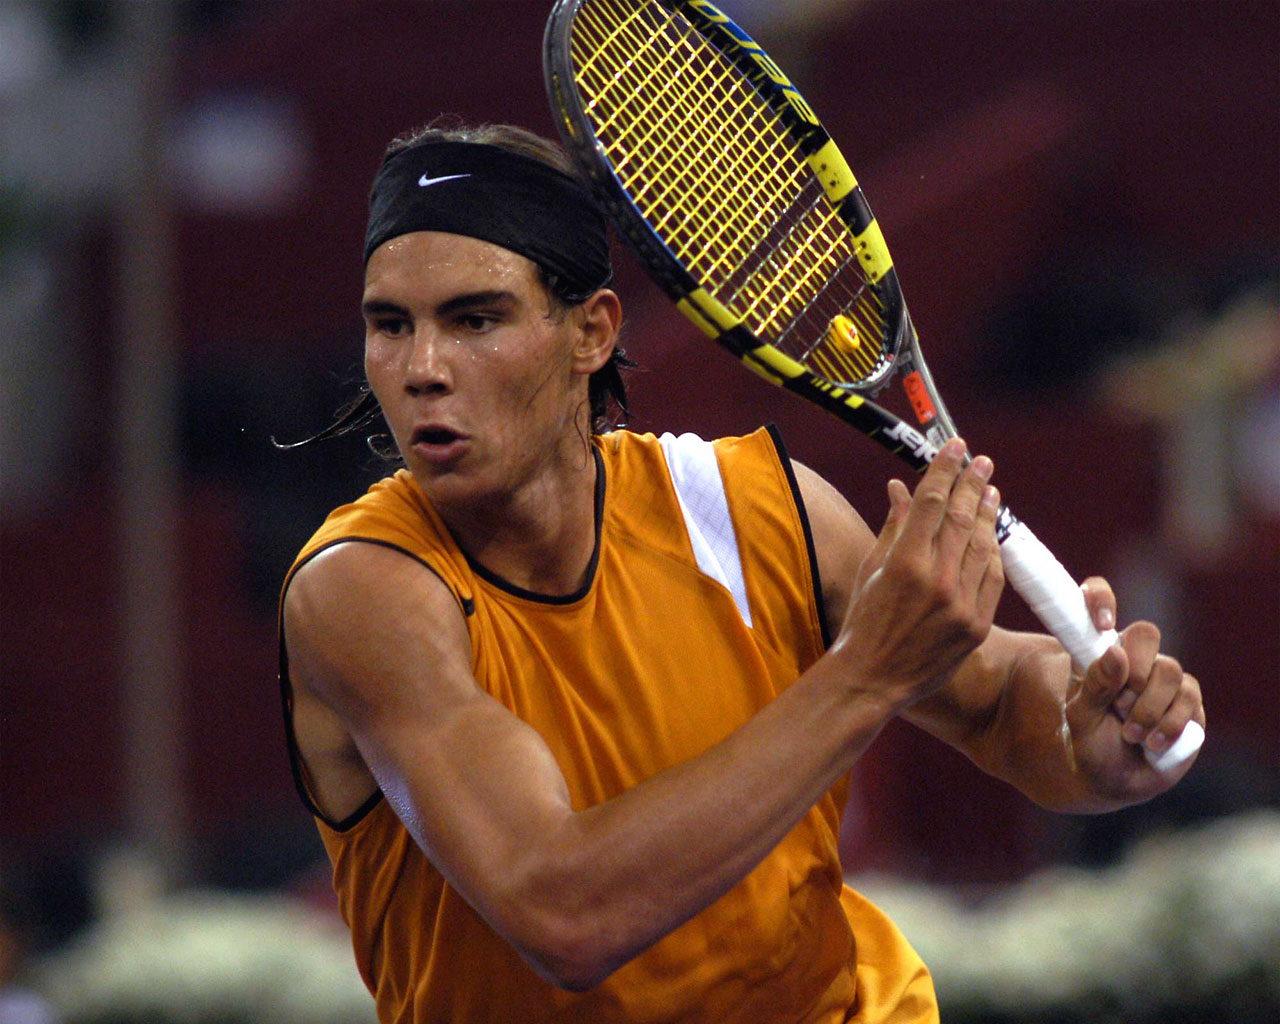 http://www.topnews.in/sports/files/Rafael_Nadal,11.jpg